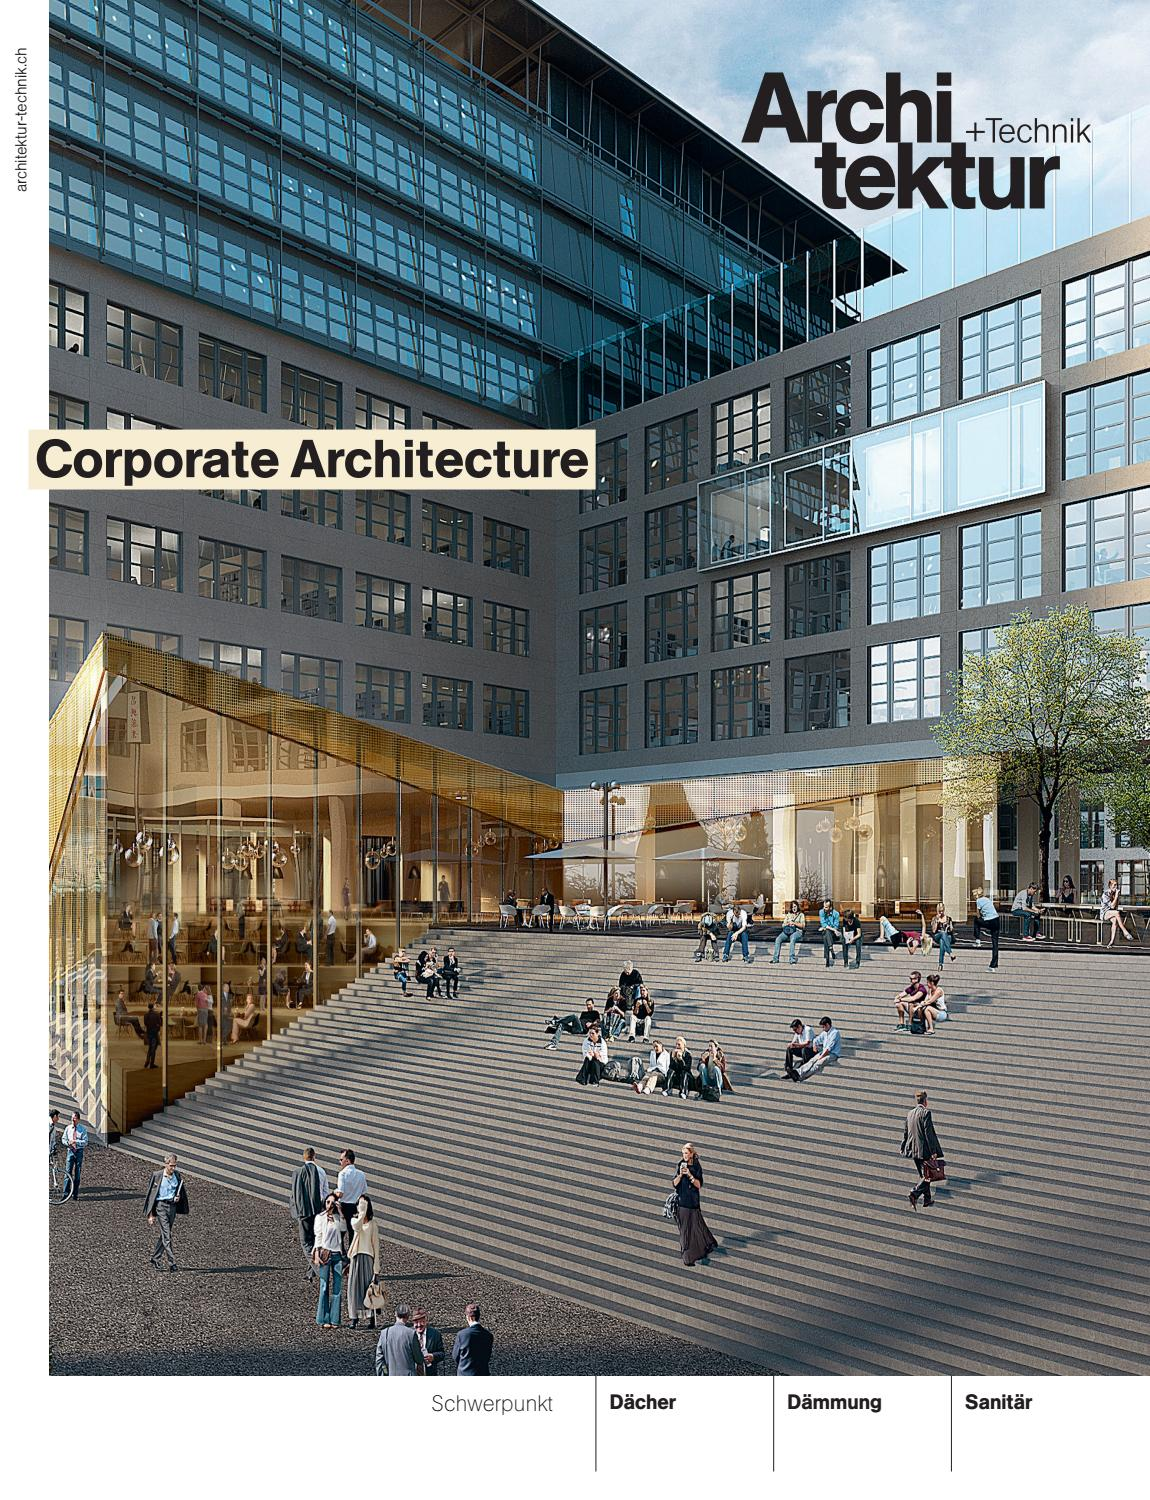 Architektur+Technik 10 2019 by BL Verlag AG issuu